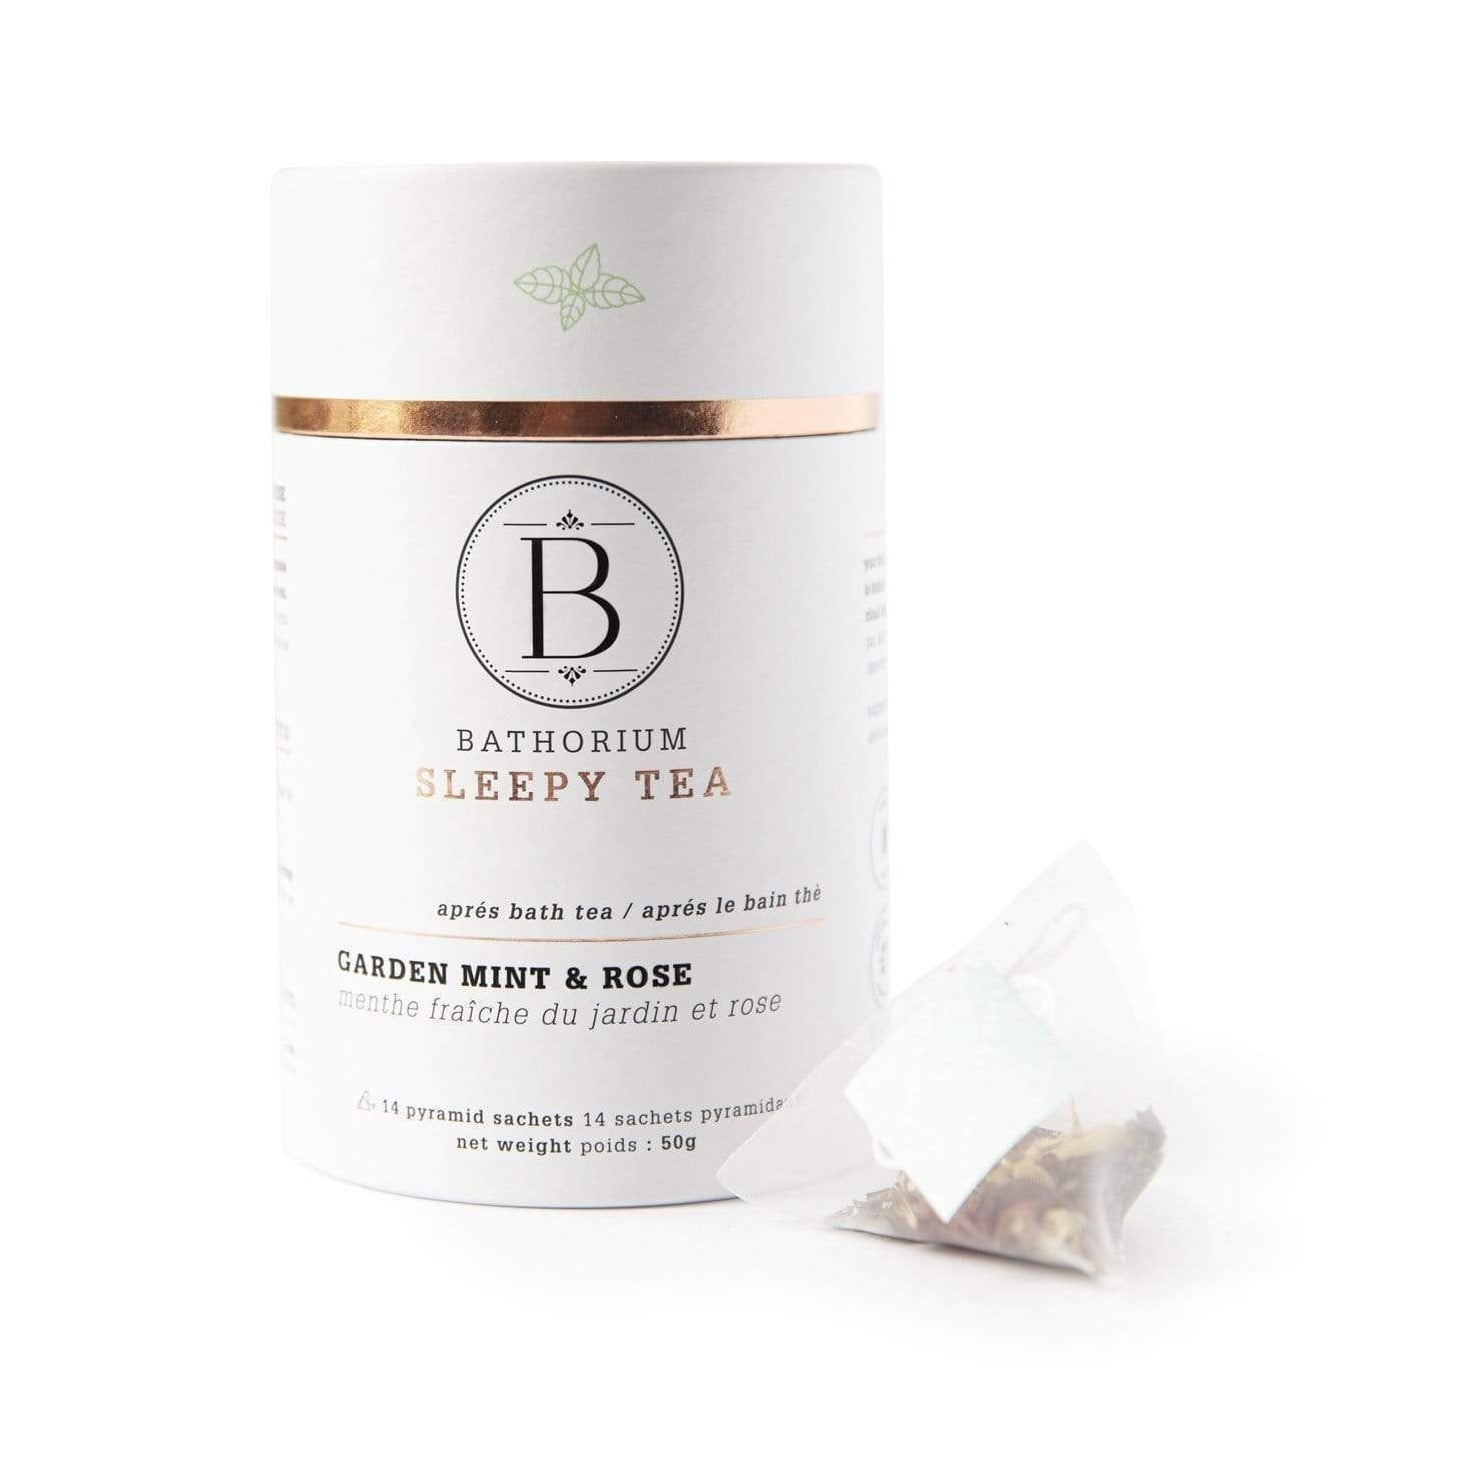 BATHORIUM - APRES BATH - SLEEPY TIME PYRAMID BAGGED TEA - GARDEN MINT & ROSE